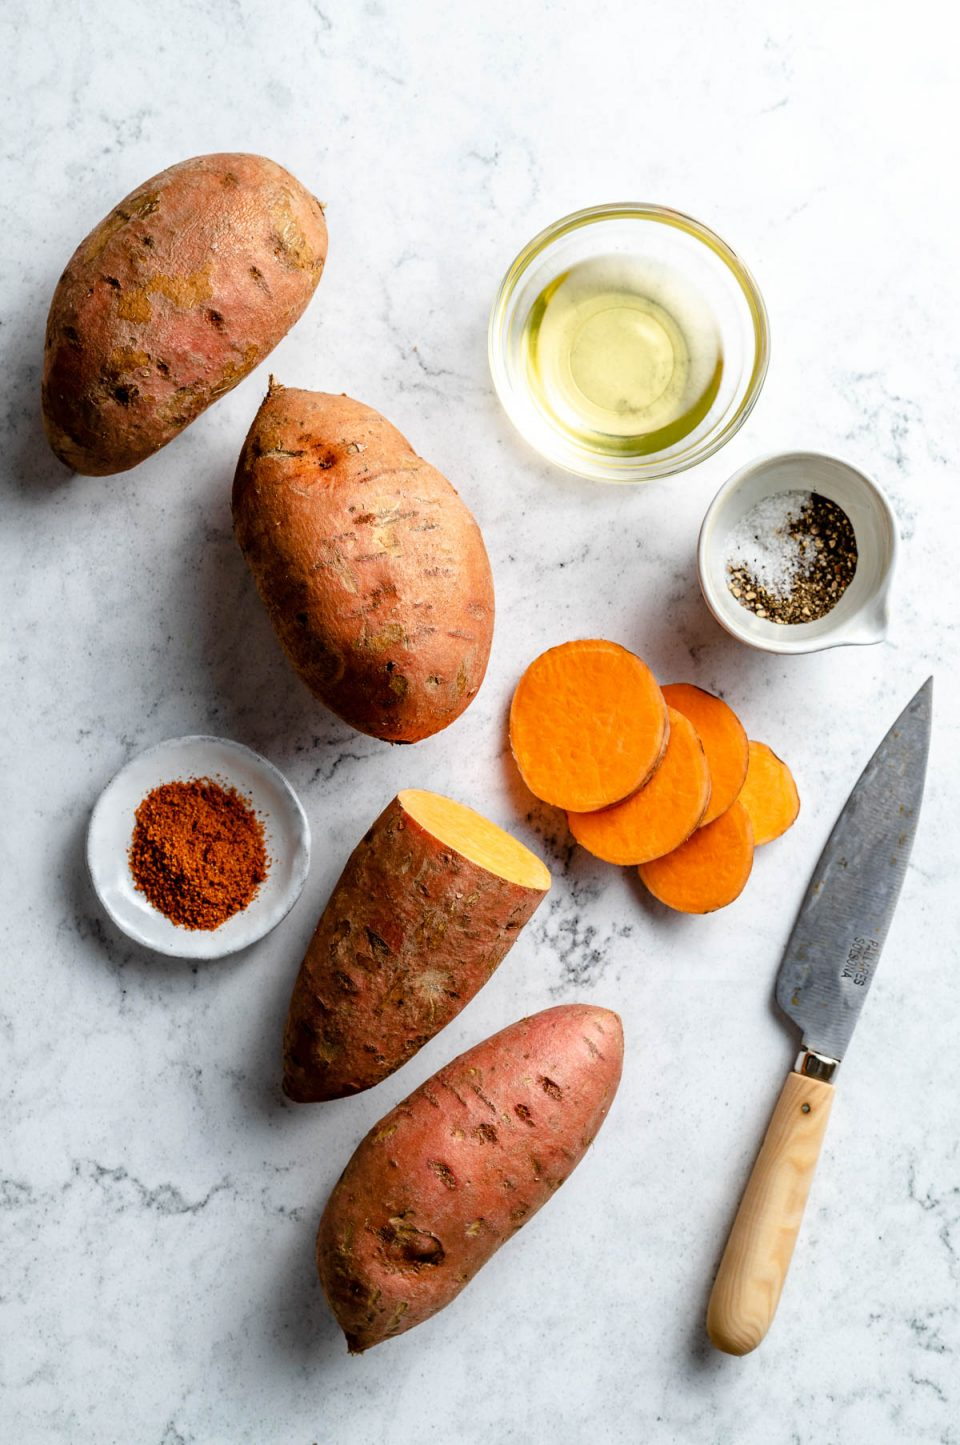 Grilled sweet potato ingredients arranged on a white & grey marble surface - sweet potato, avocado oil, kosher salt, ground black pepper, & optional bbq dry rub. A pairing knife rests on the surface next to the ingredients.